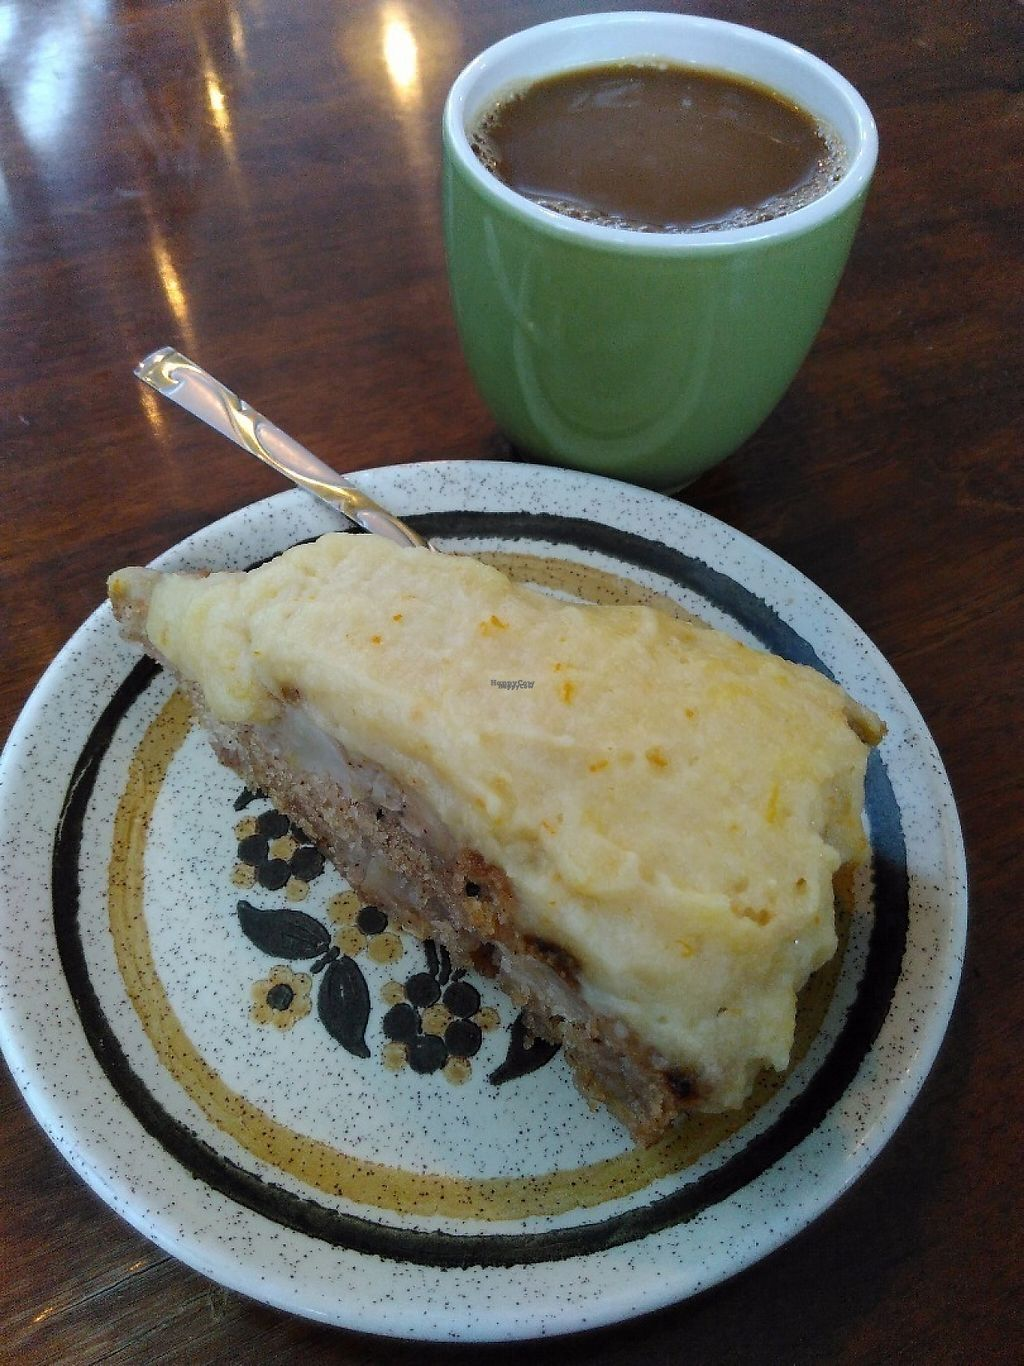 """Photo of Lipterin  by <a href=""""/members/profile/Lapa"""">Lapa</a> <br/>Vegan apple cake and coffey <br/> February 10, 2017  - <a href='/contact/abuse/image/85961/224956'>Report</a>"""